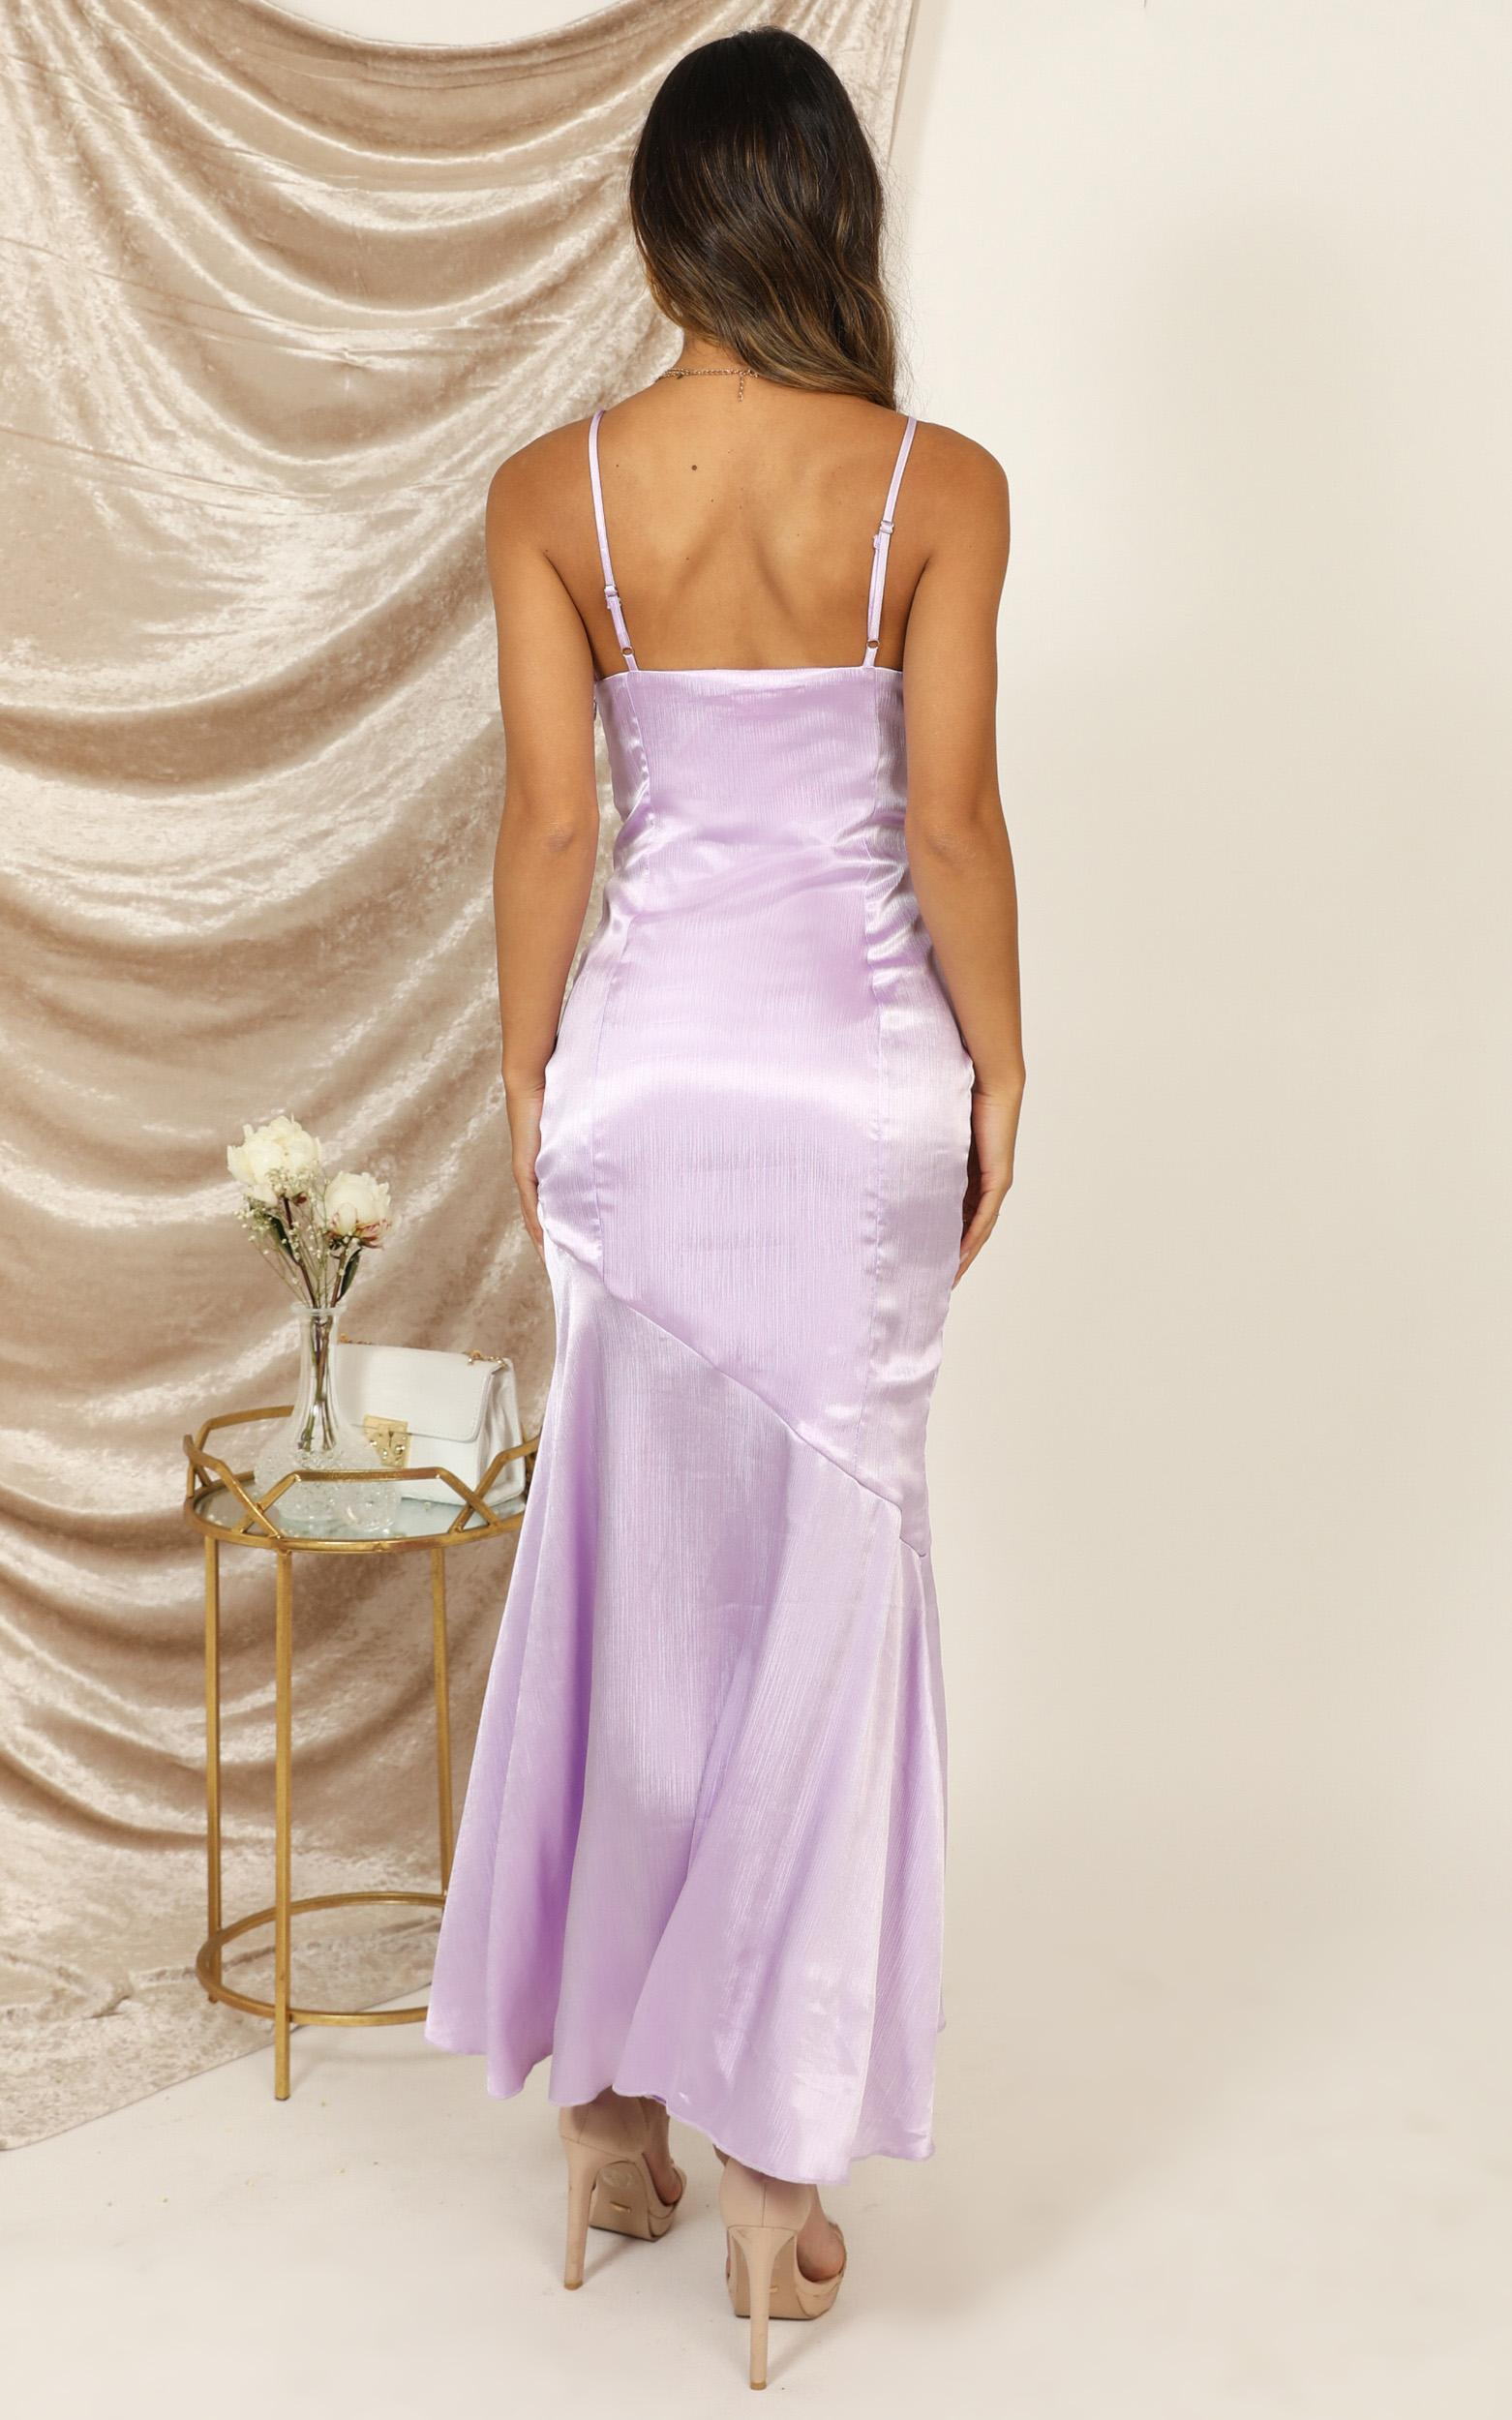 A Touch Of Your Love Dress in lilac satin - 20 (XXXXL), Purple, hi-res image number null